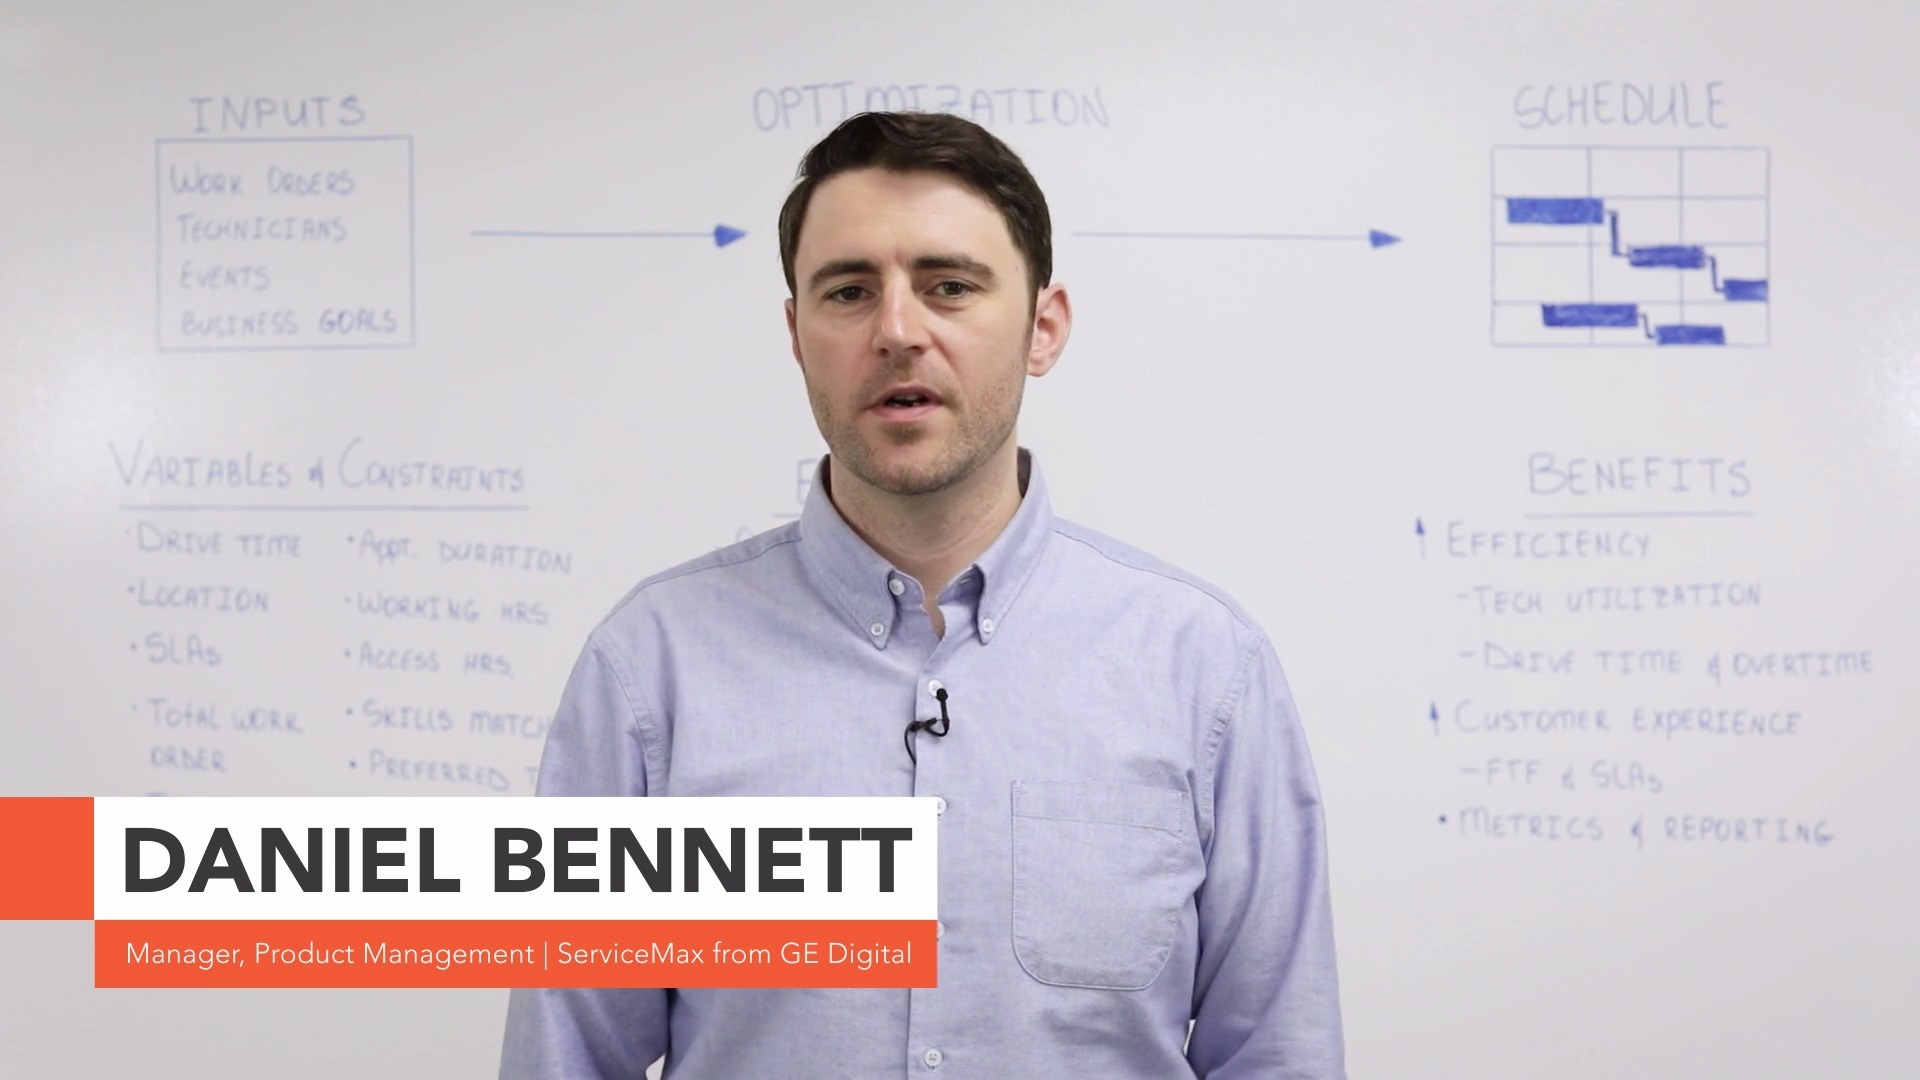 Maxpert Video Series - Daniel Bennett